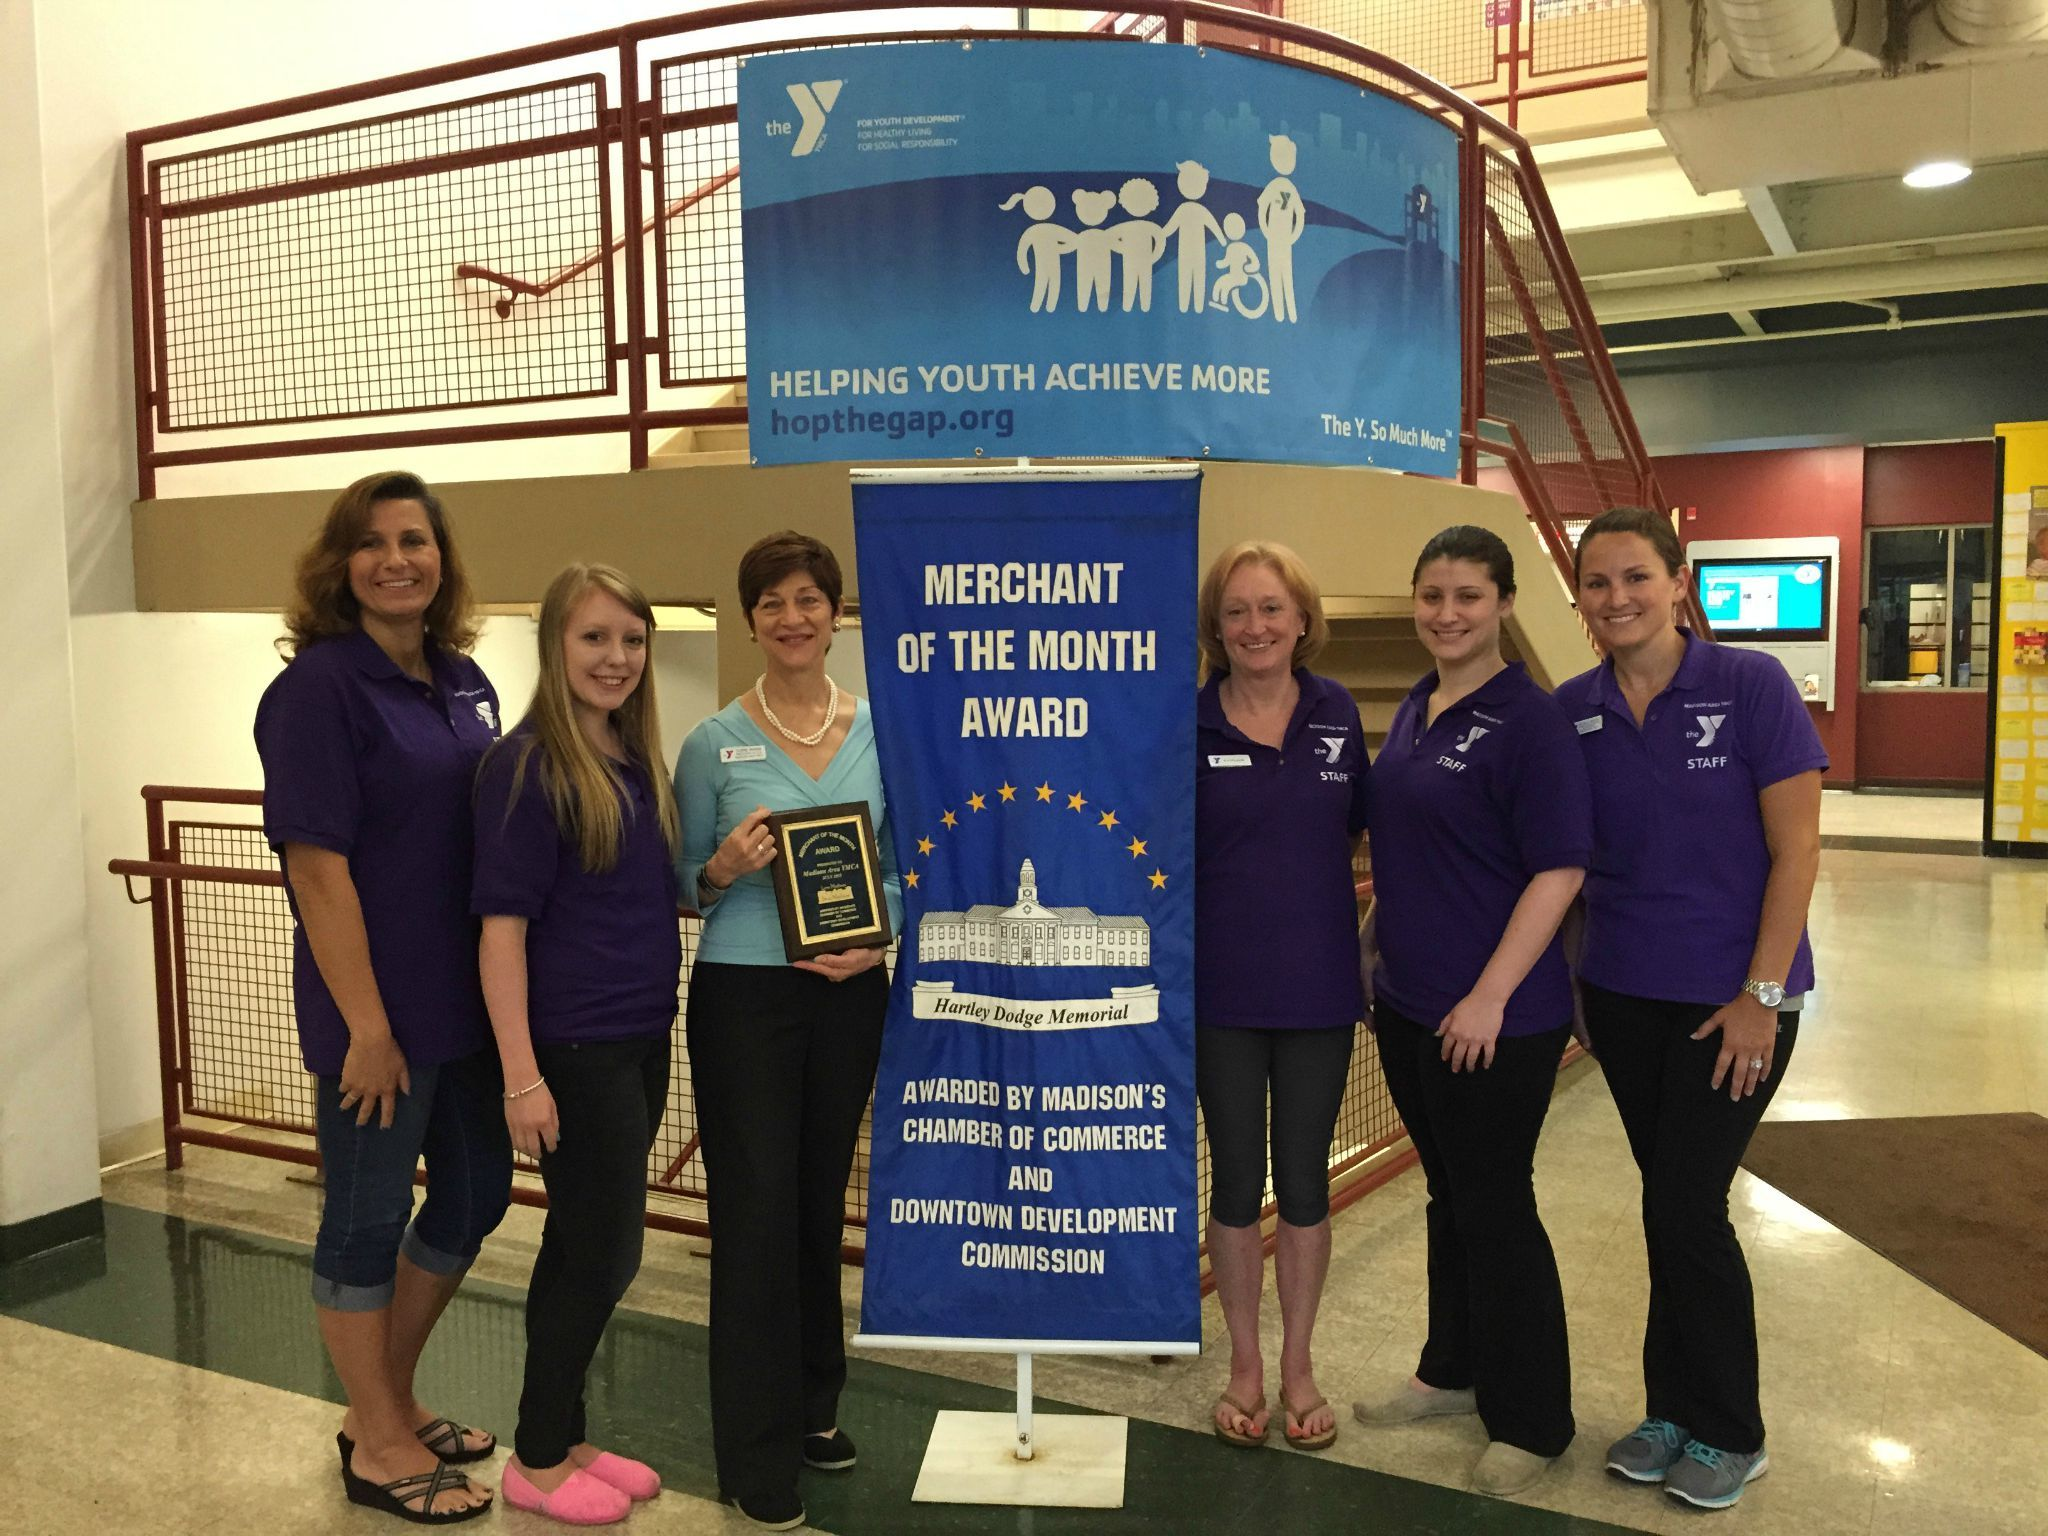 bfcf2395c0562686ce8b_Merchant_of_the_Month-_Madison_Area_YMCA_2015.jpg